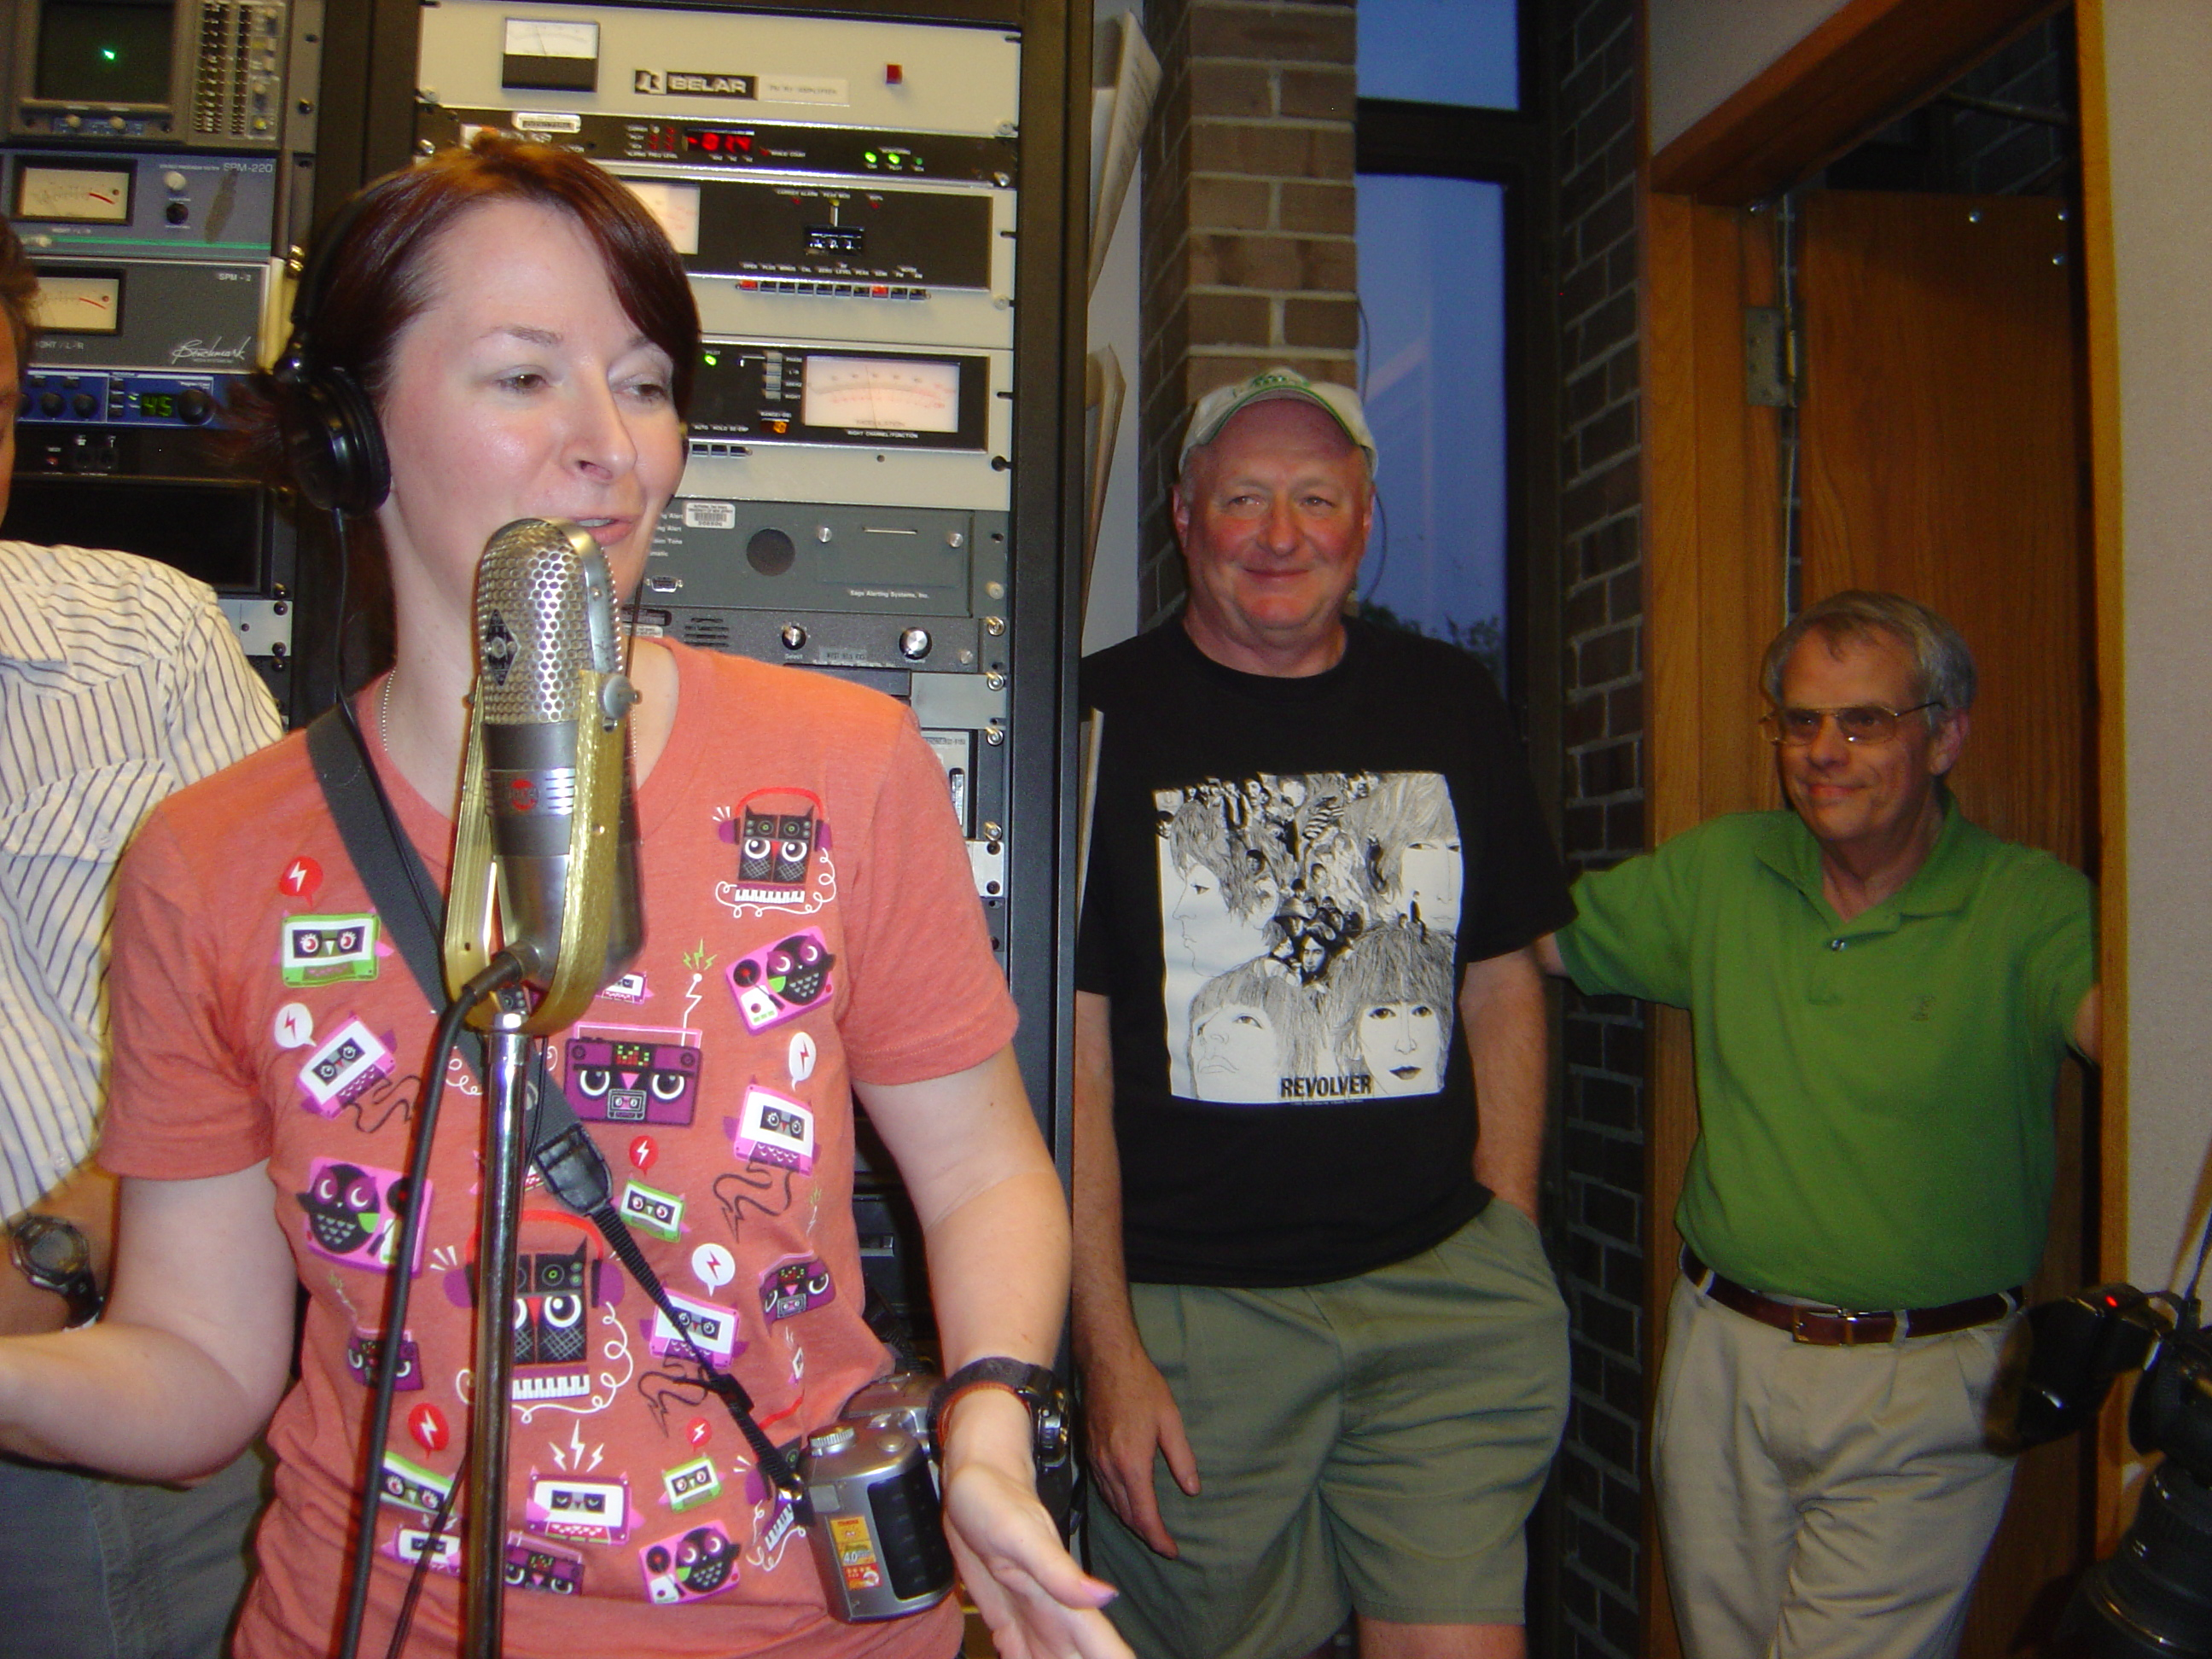 Lisa Uber at the microphone, John Cooper and Tim Espar look on.